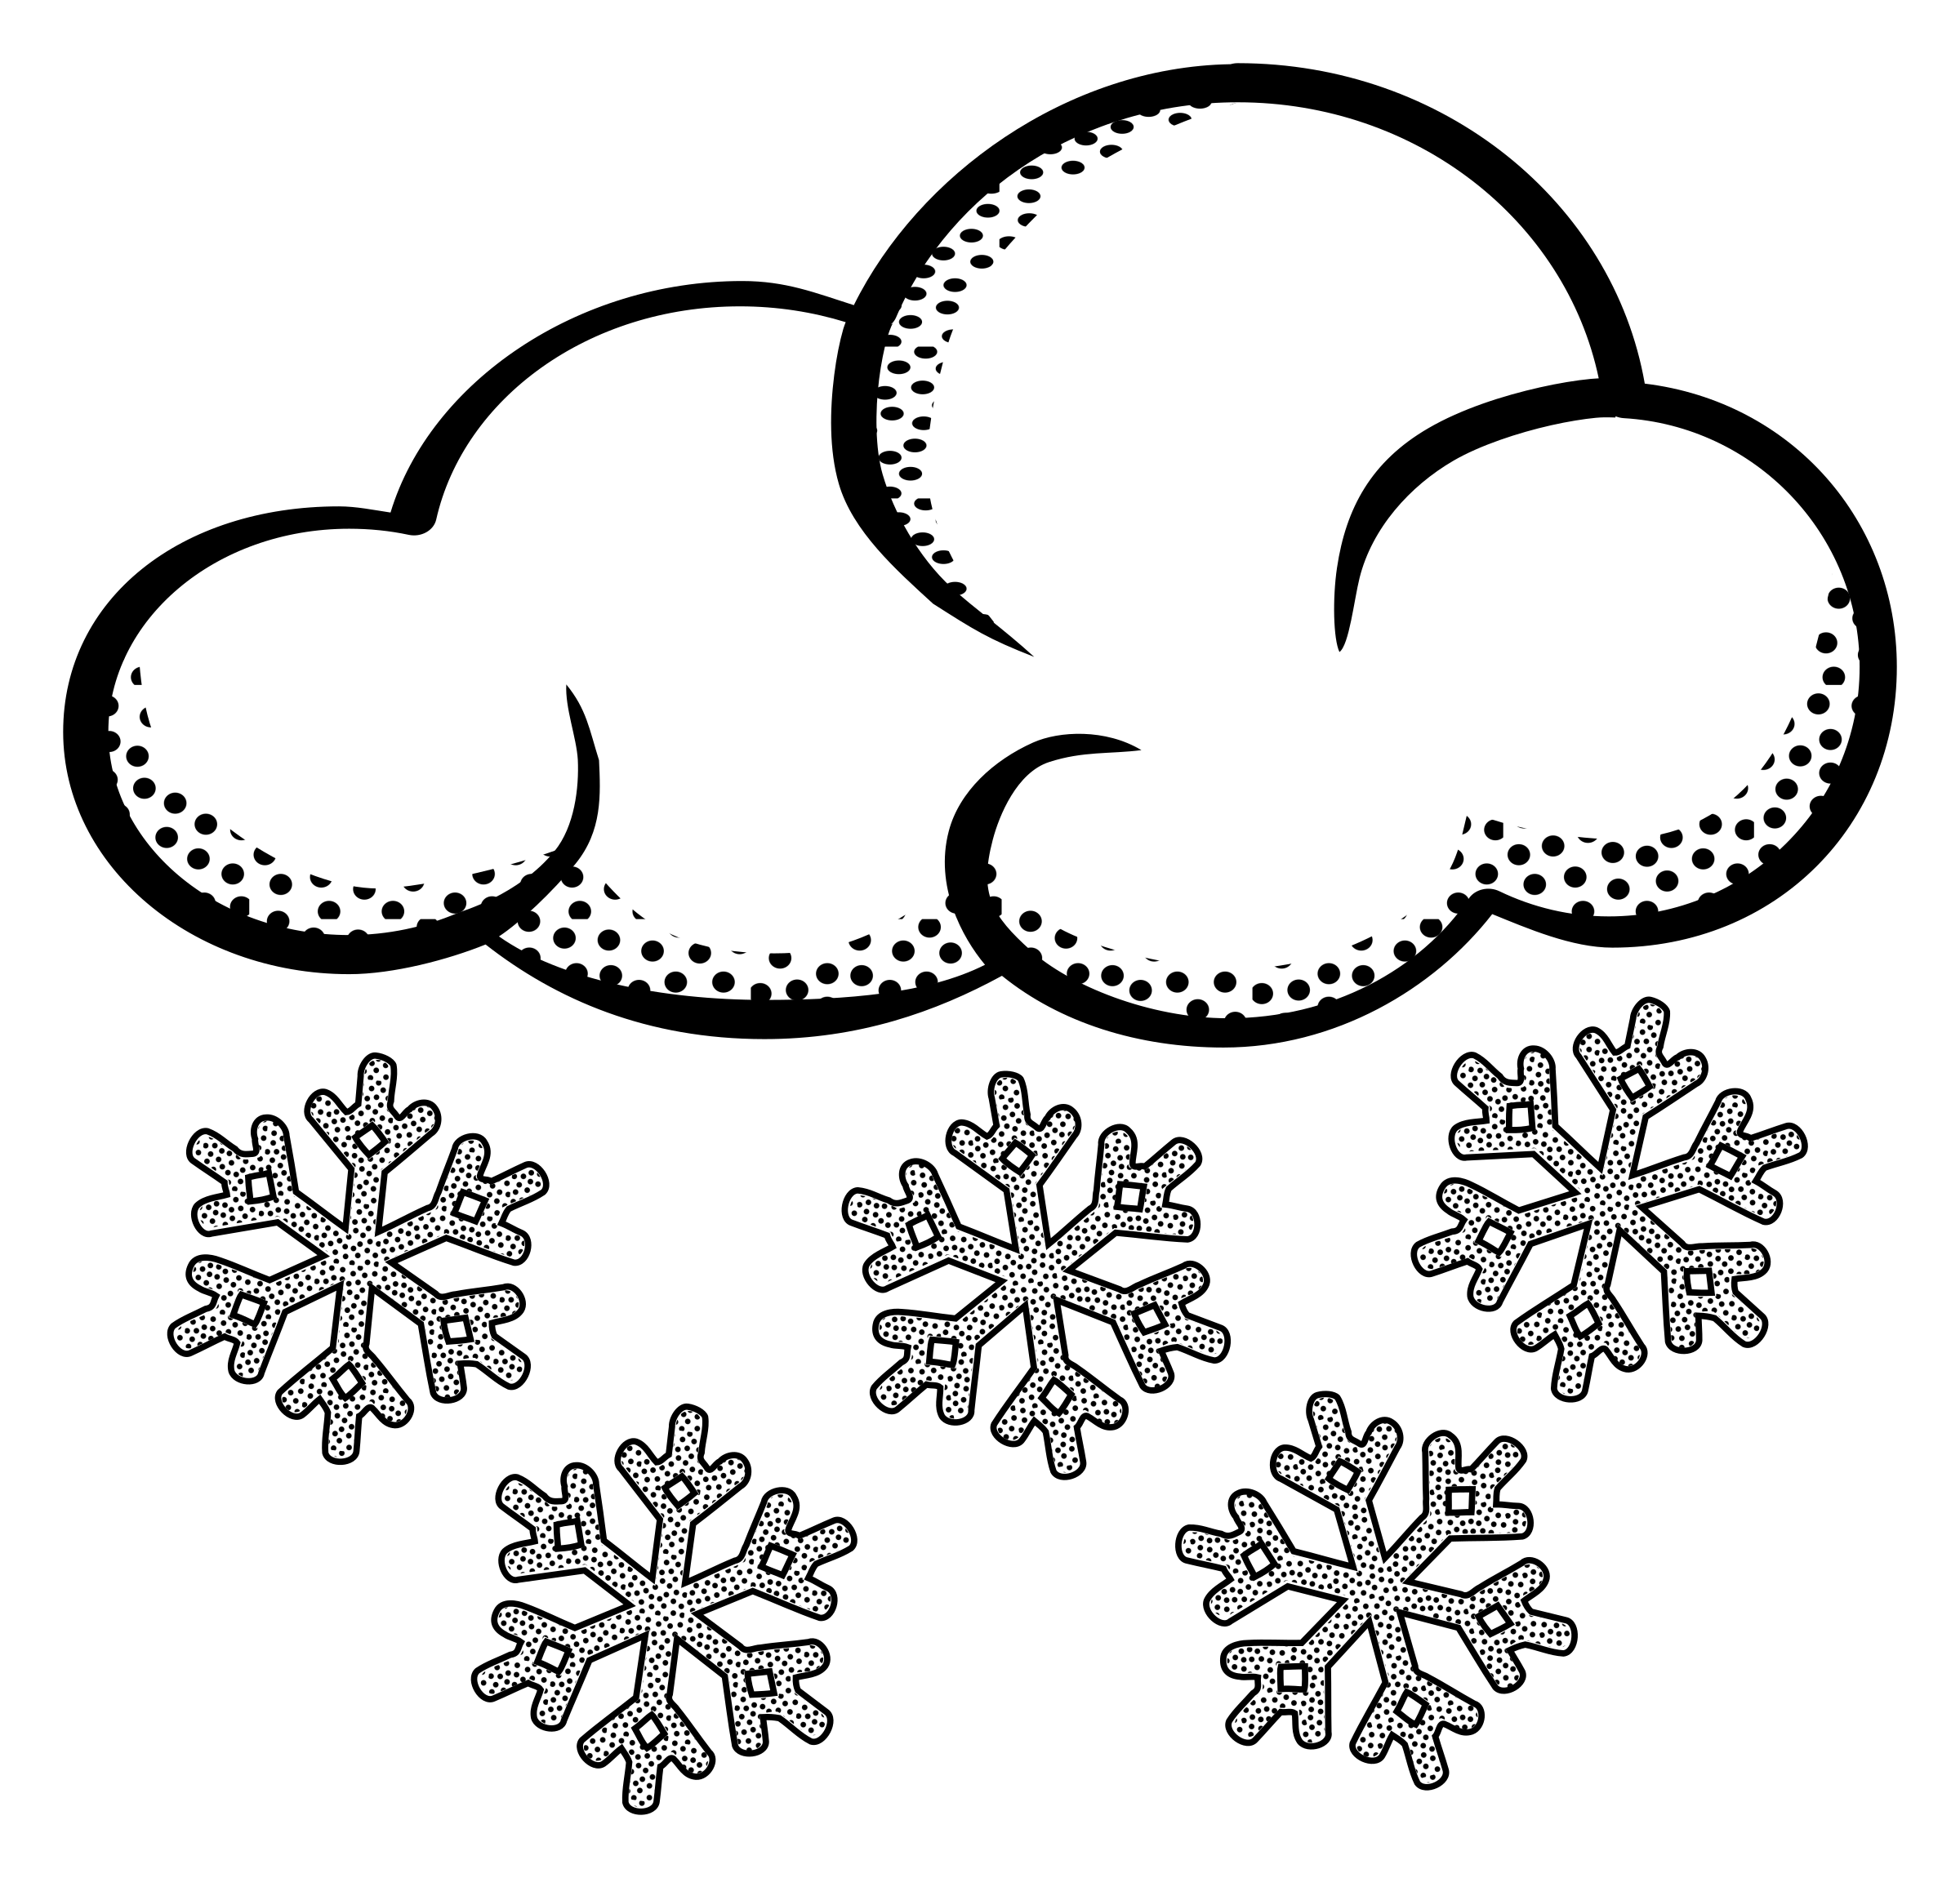 Climate drawing black and white. Collection of snowy